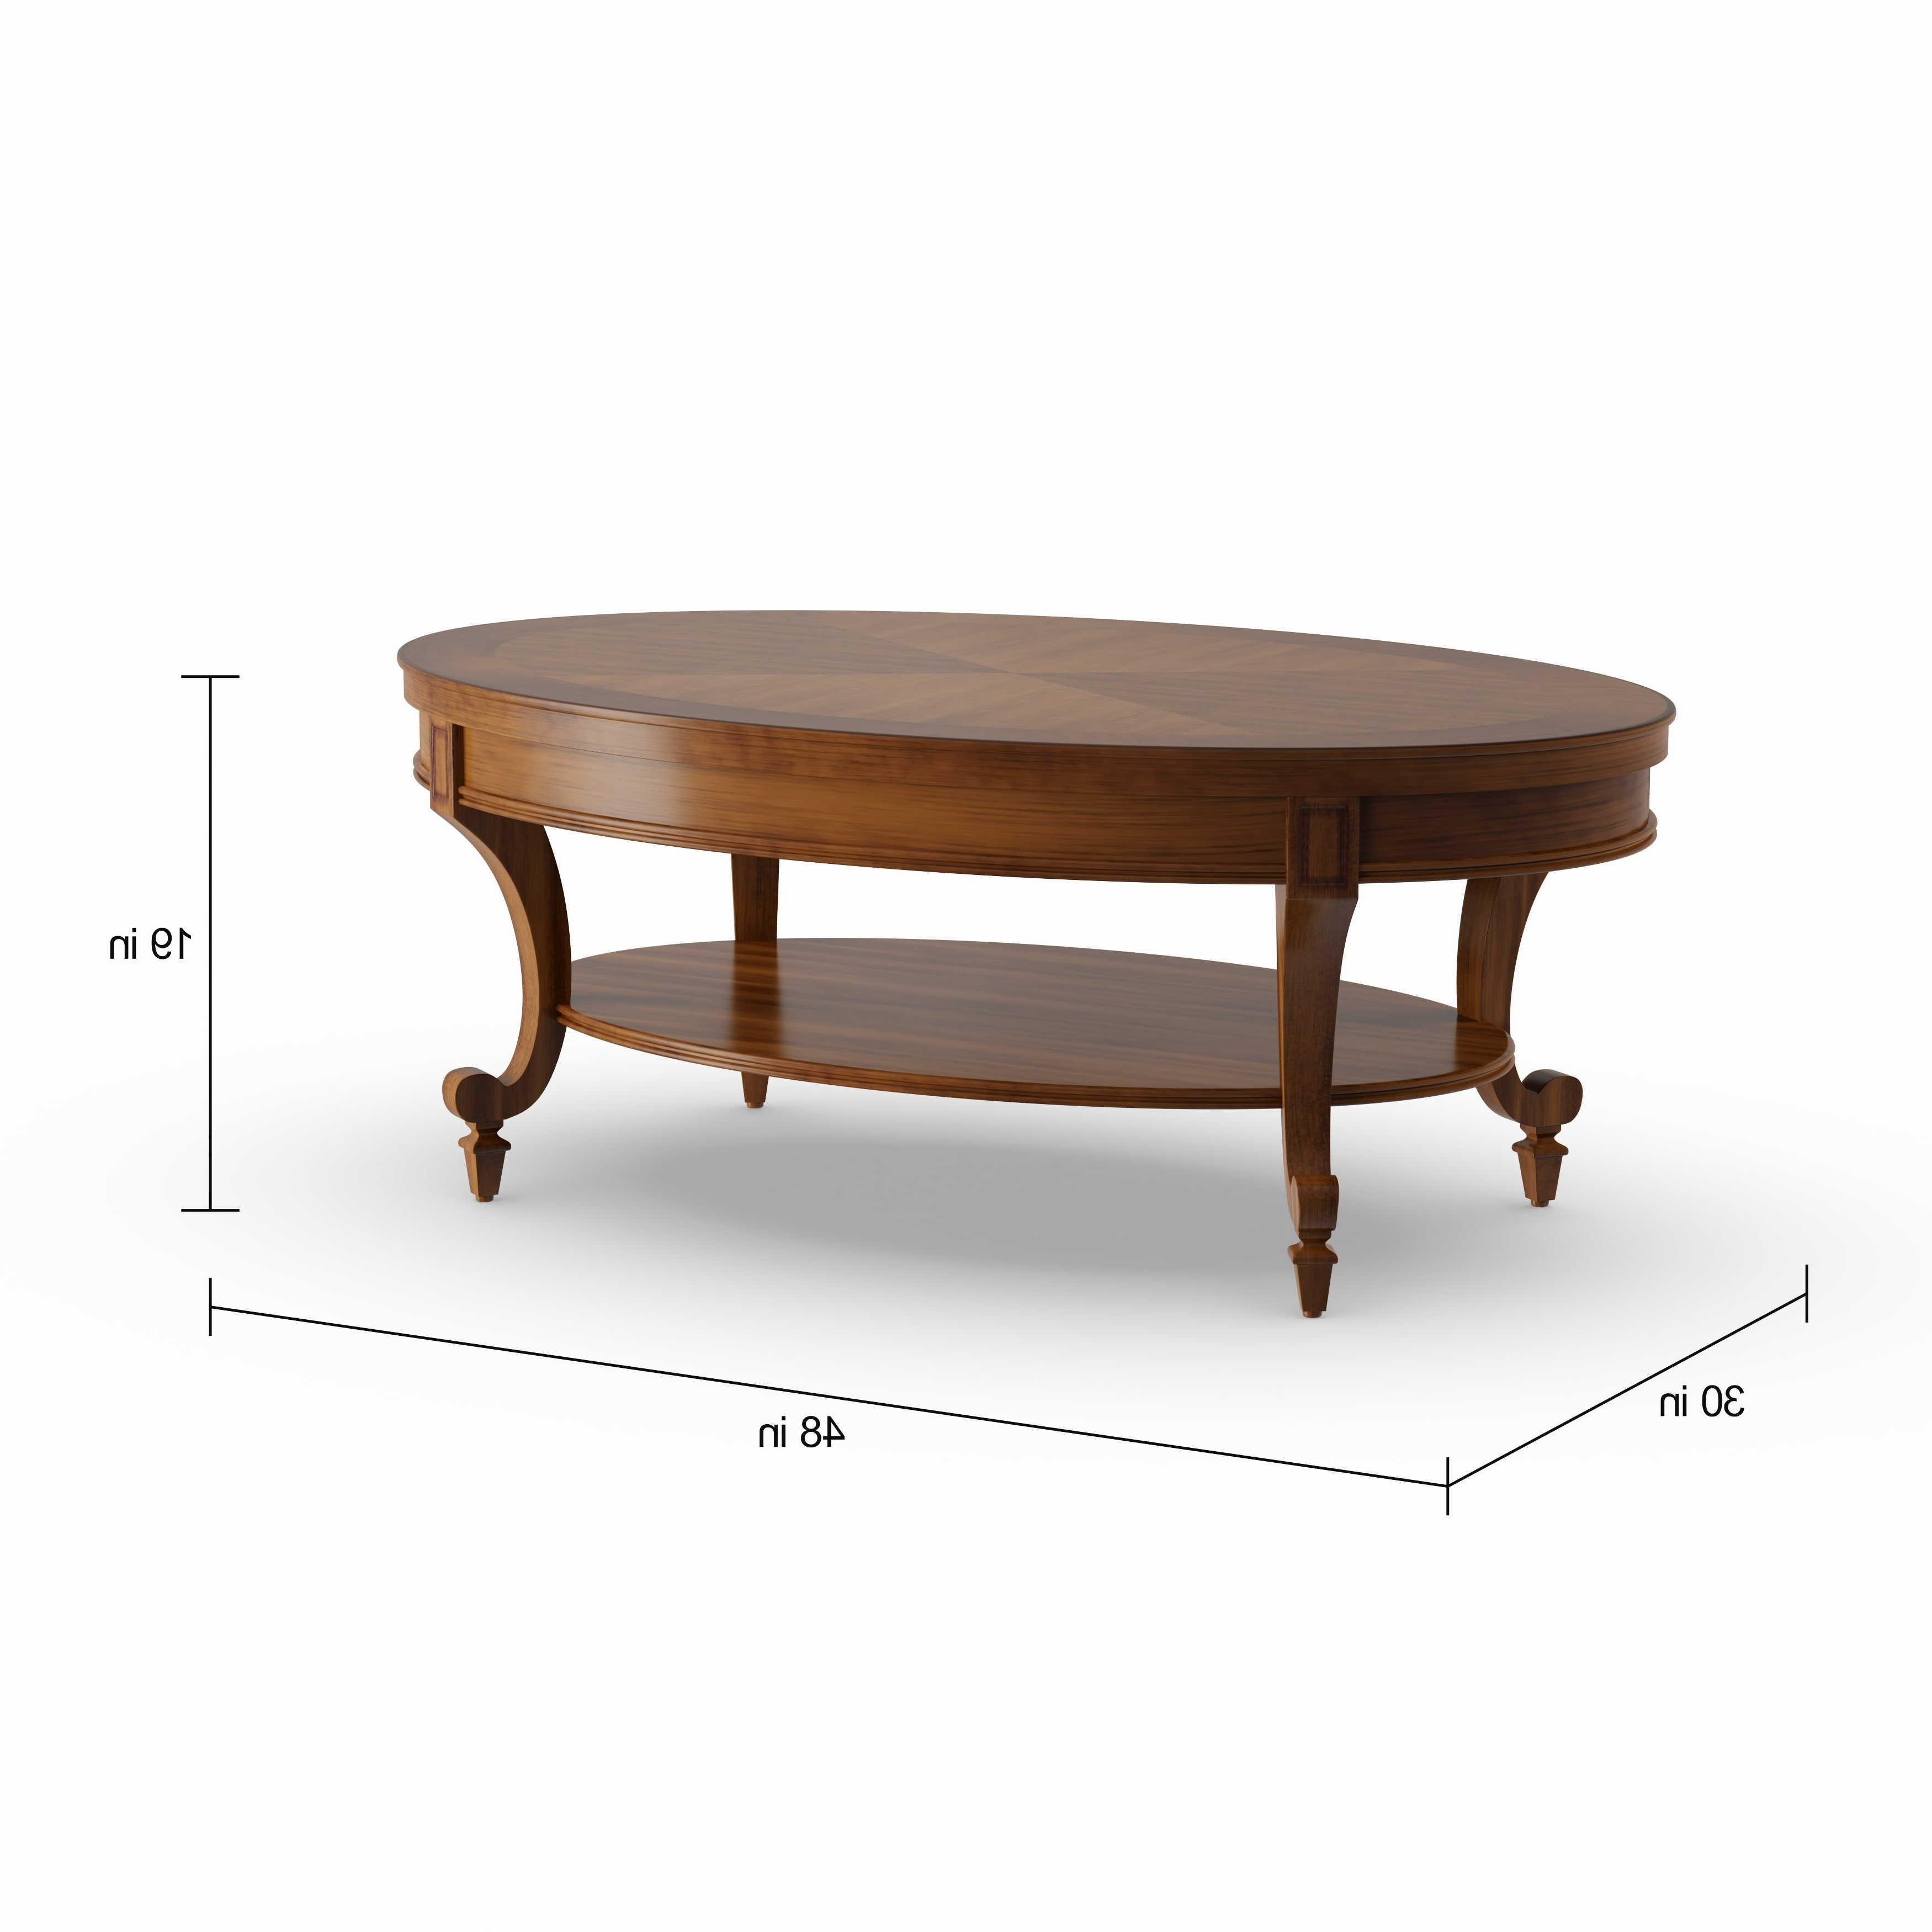 Newest Winslet Cherry Finish Wood Oval Coffee Tables With Casters Intended For Gracewood Hollow Dones Traditional Cinnamon Round End Table (View 5 of 20)